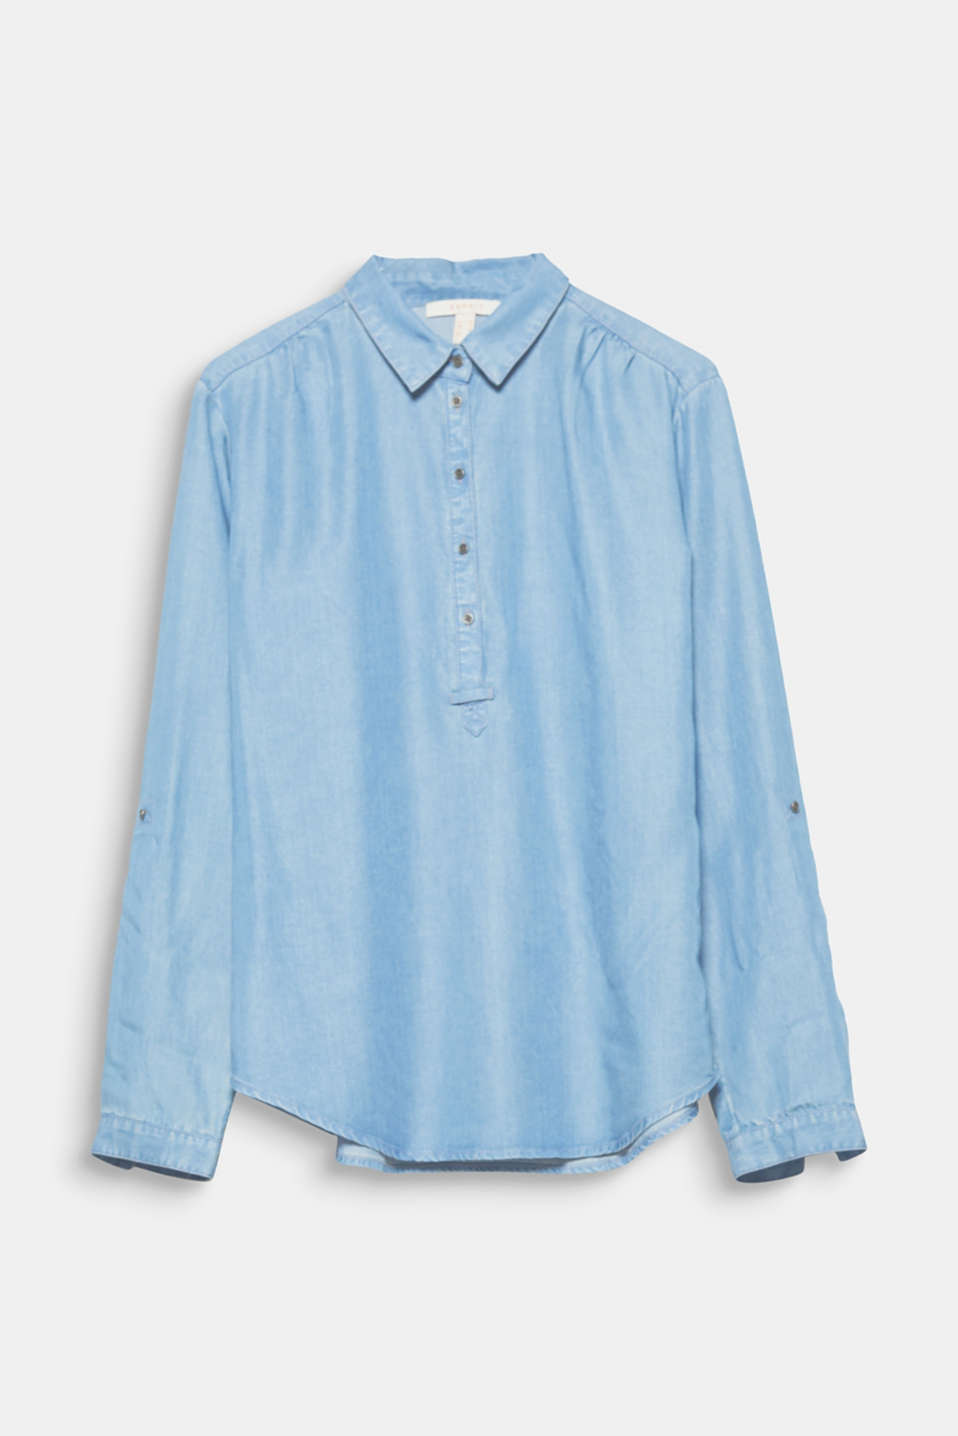 Offers lots of styling options: flowing lyocell blouse in a denim look with a button placket and turn-up sleeves!